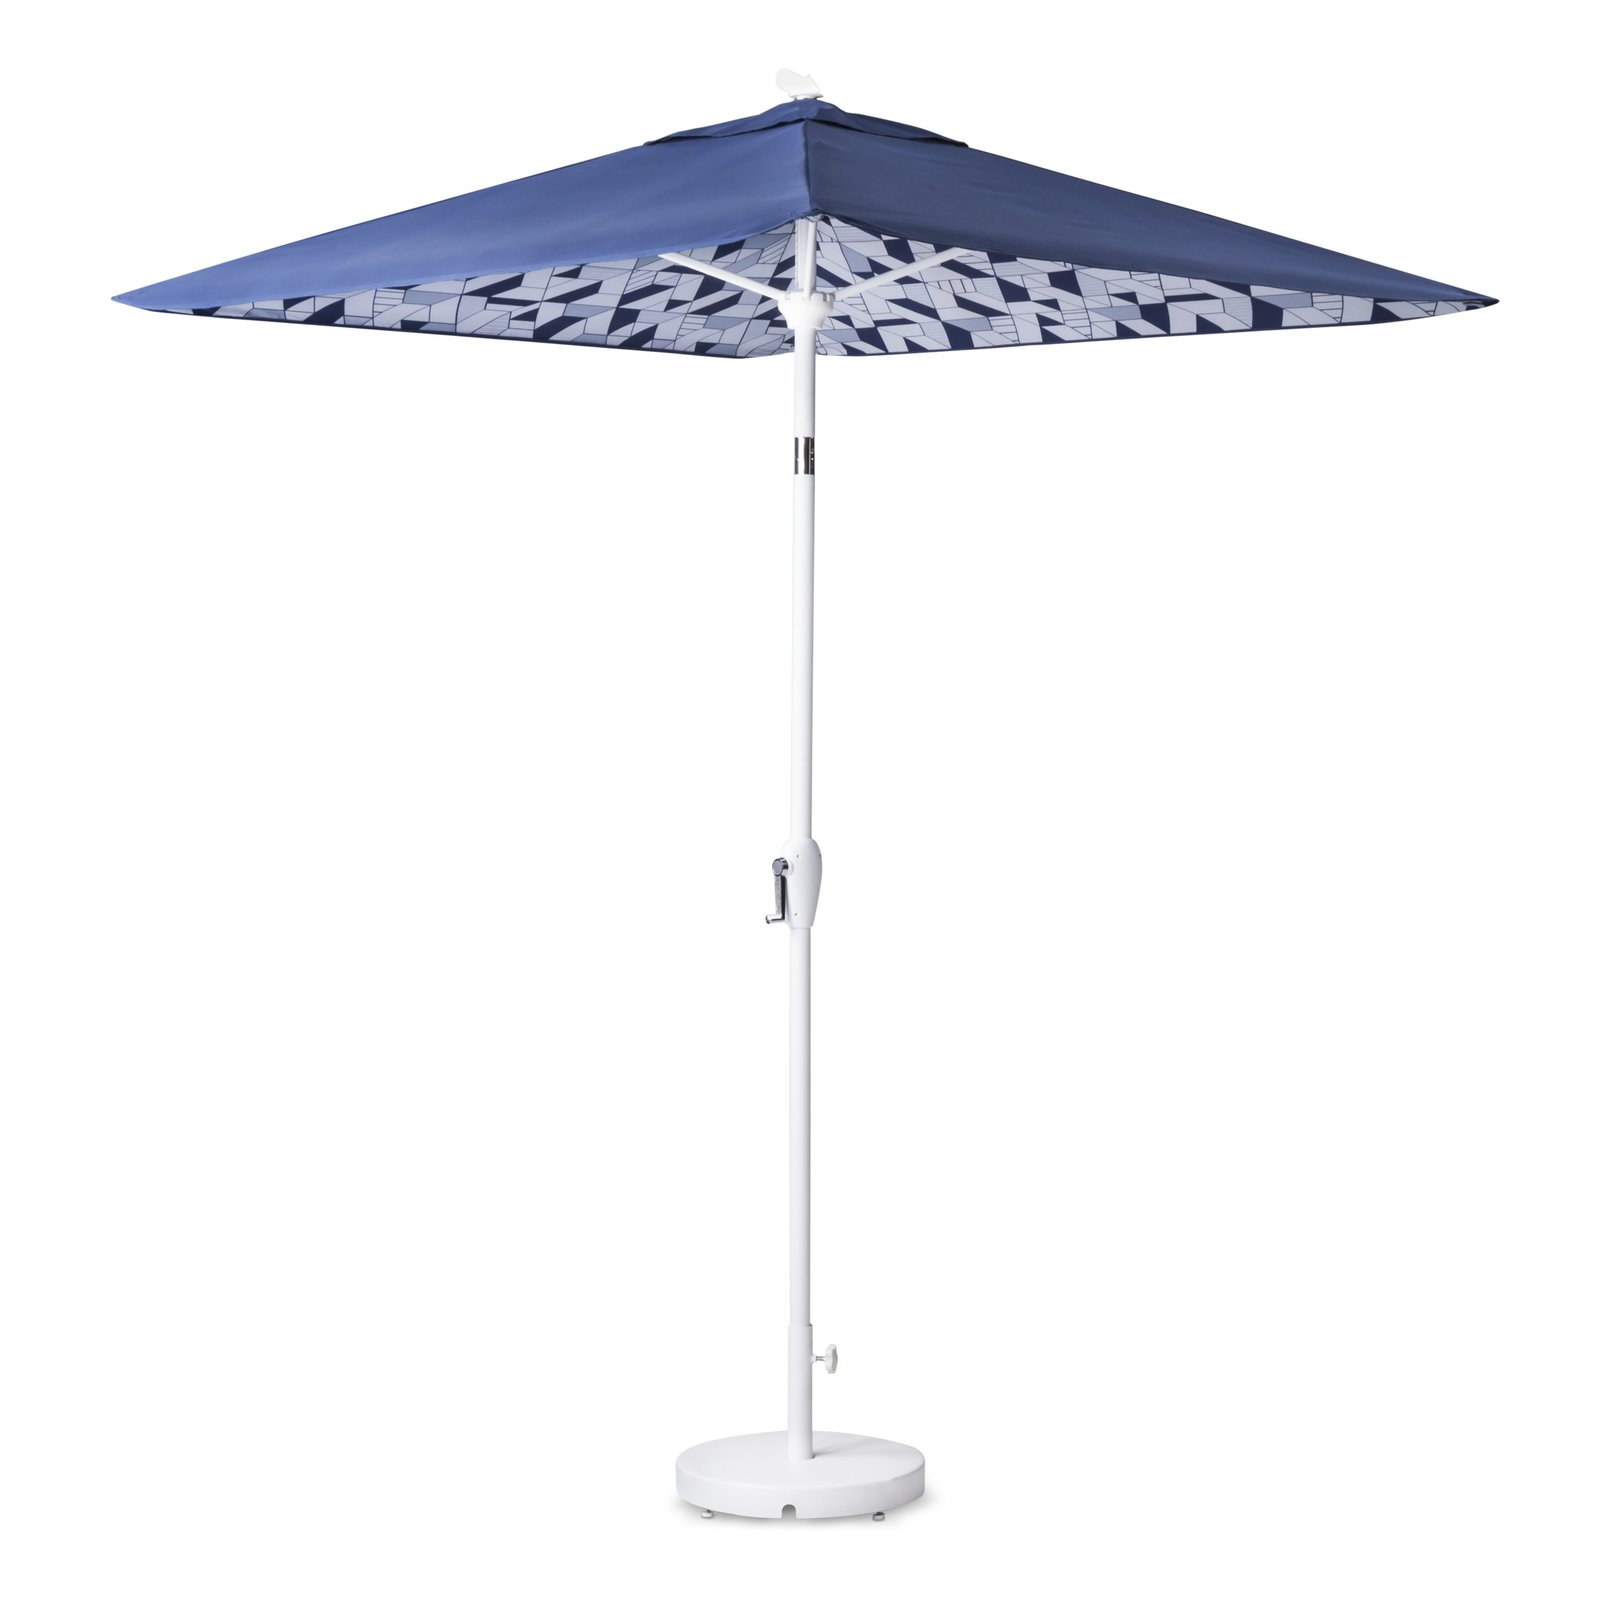 Umbrella, $119.99; Base, $49.99; designed by Chris Deam and Nick Dine for Modern by Dwell Magazine for Target   Photo 6 of 17 in Modern by Dwell Magazine: Outdoor Collection